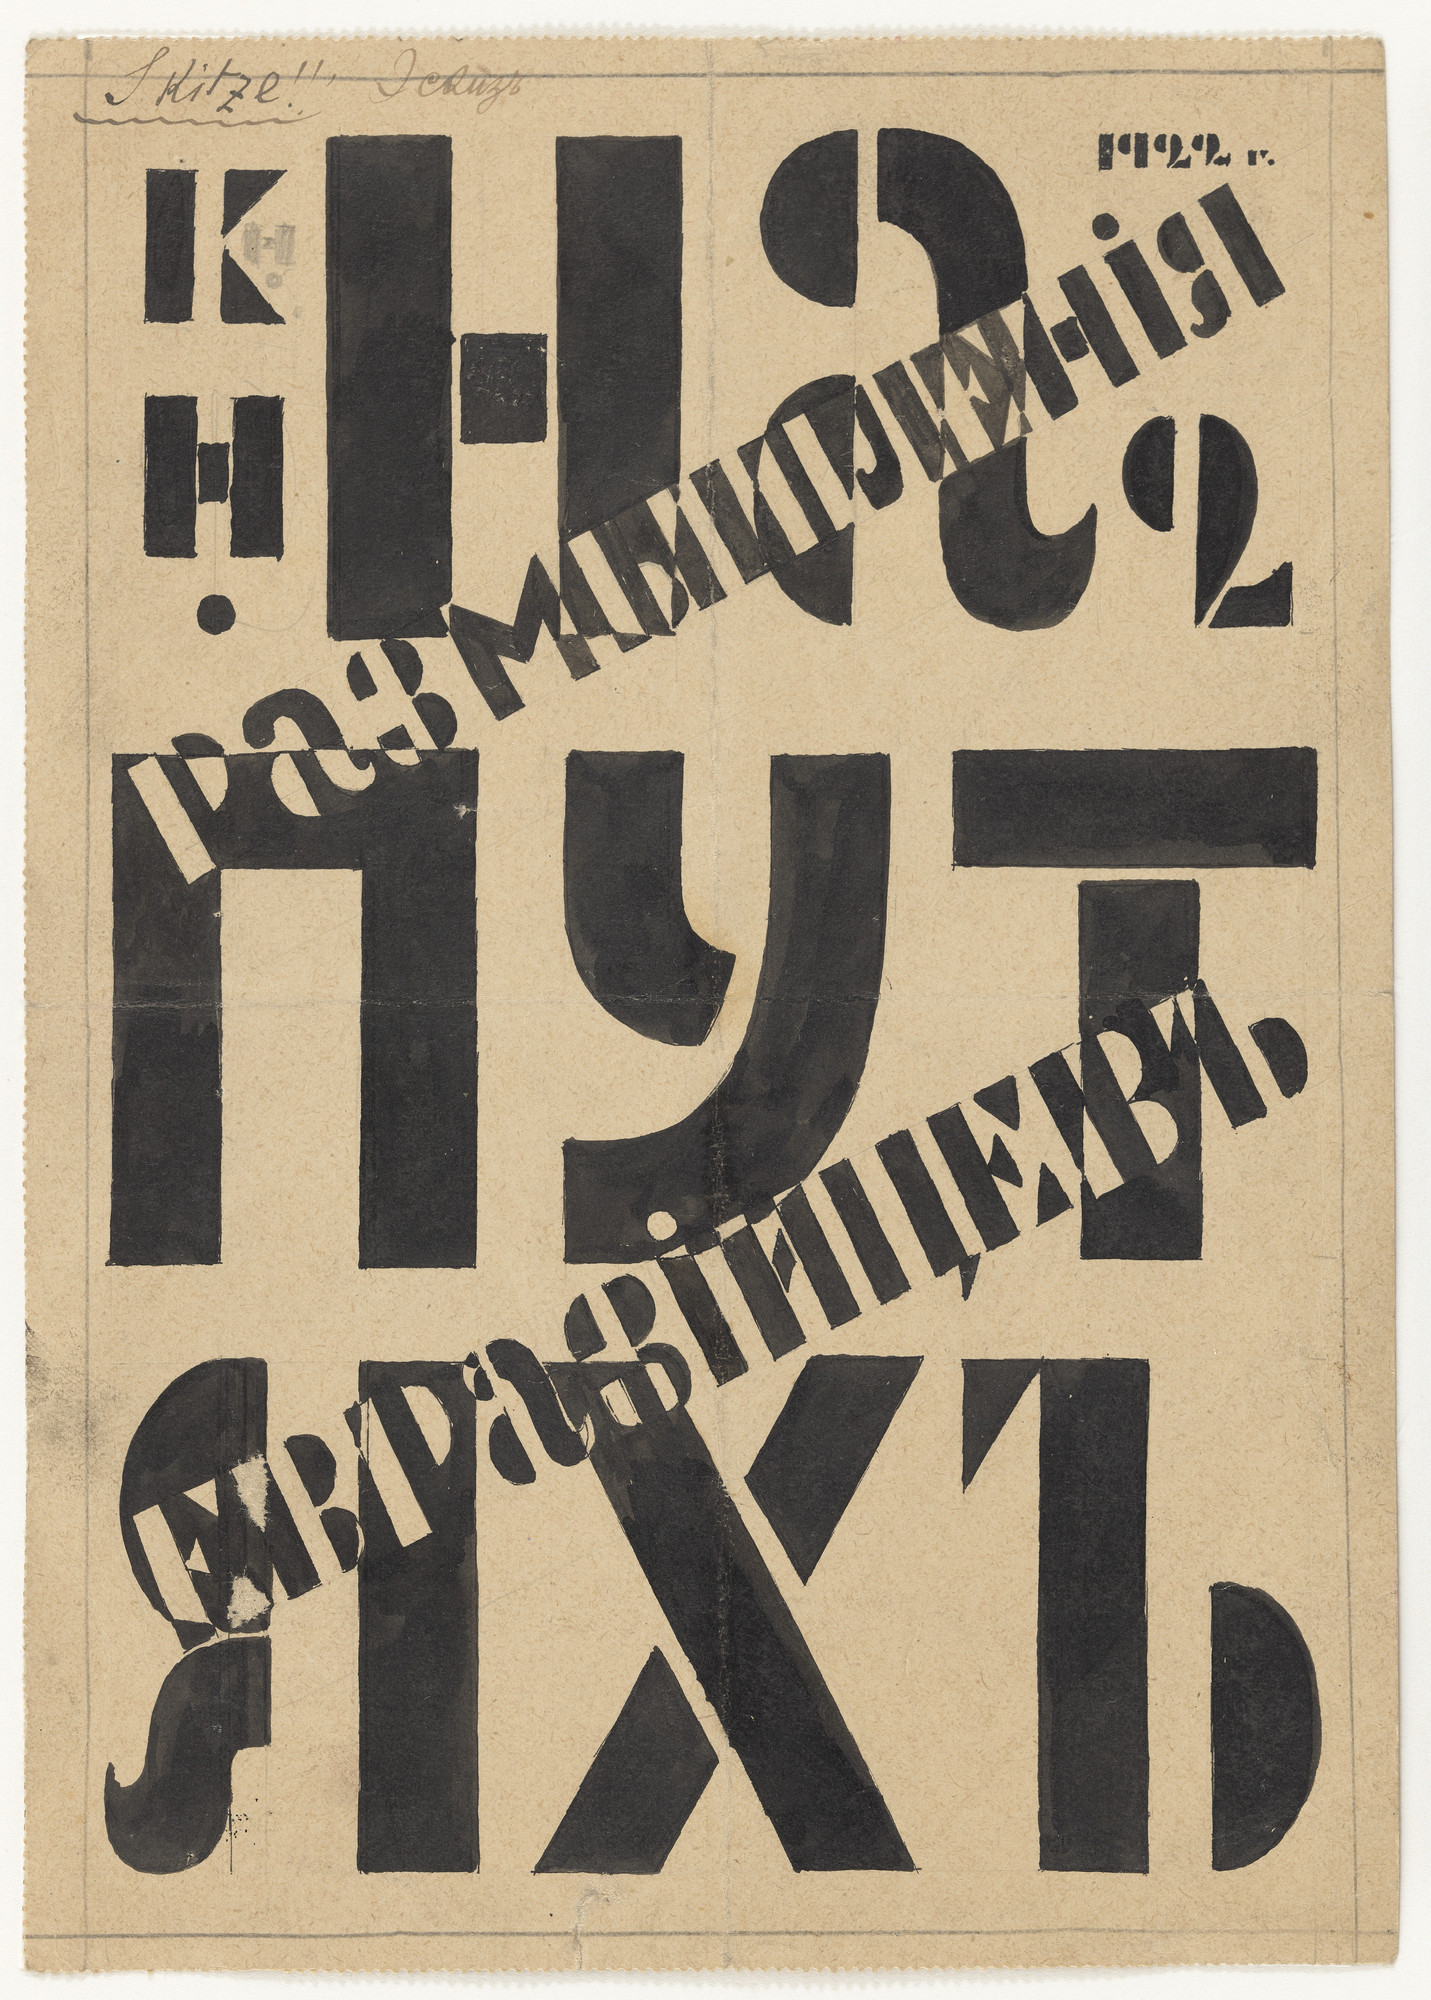 Pavel Tchelitchew. .a) Sketch for The Eurasian Manifesto: Reflections of Eurasians. On the Roads. .b) Untitled. 1922